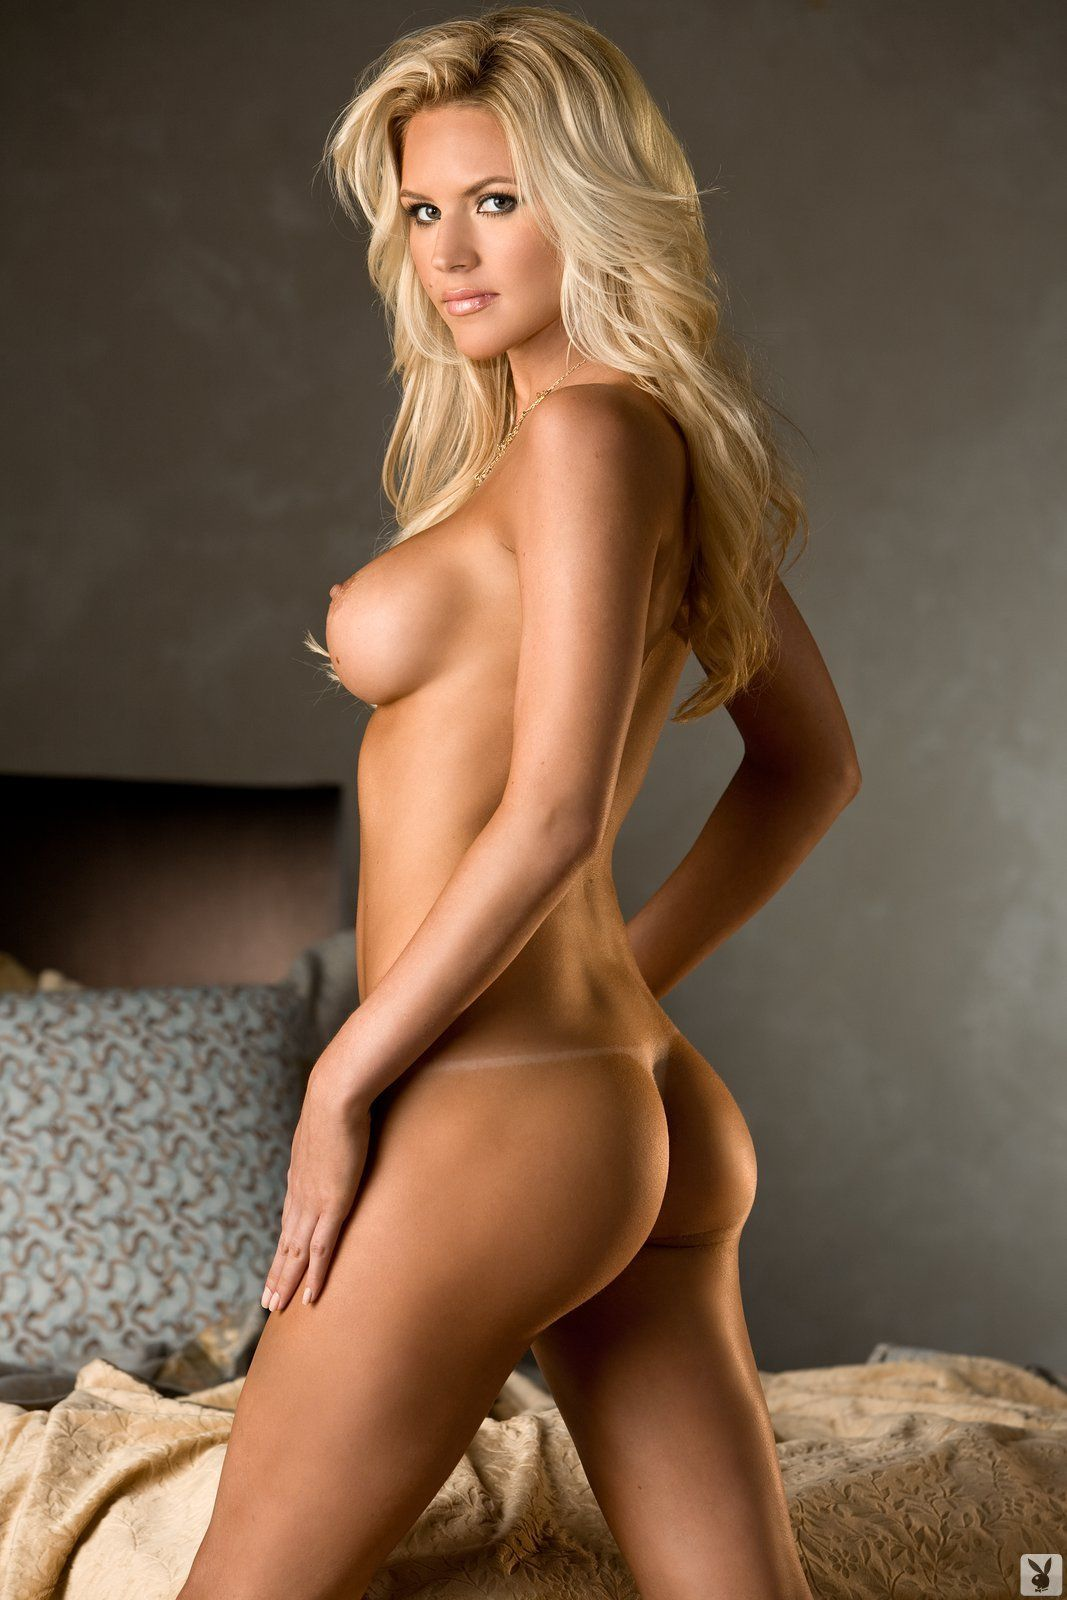 Alexis texas naked by her self